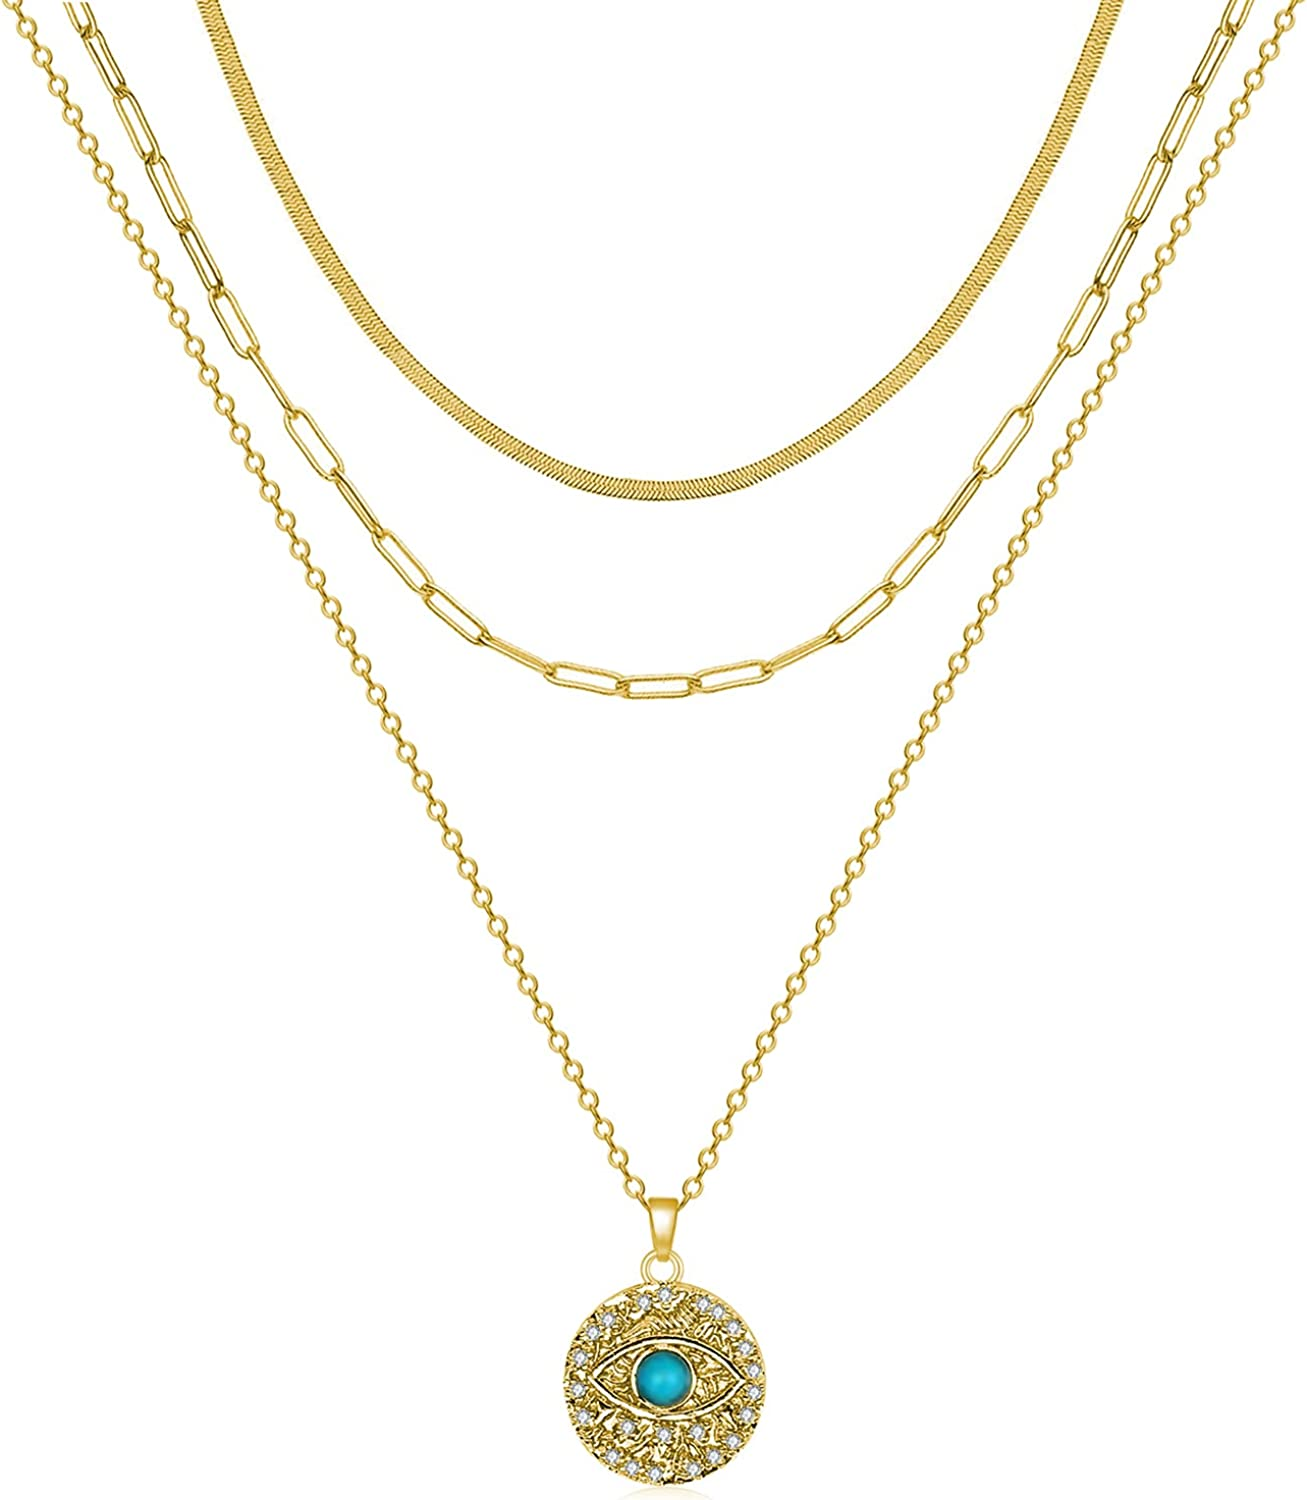 Layered Evil Eye Necklaces for Women Gold Plated Ojo Turco Necklace Multilayer Snake Paperclip Chain Choker Necklaces for Girls